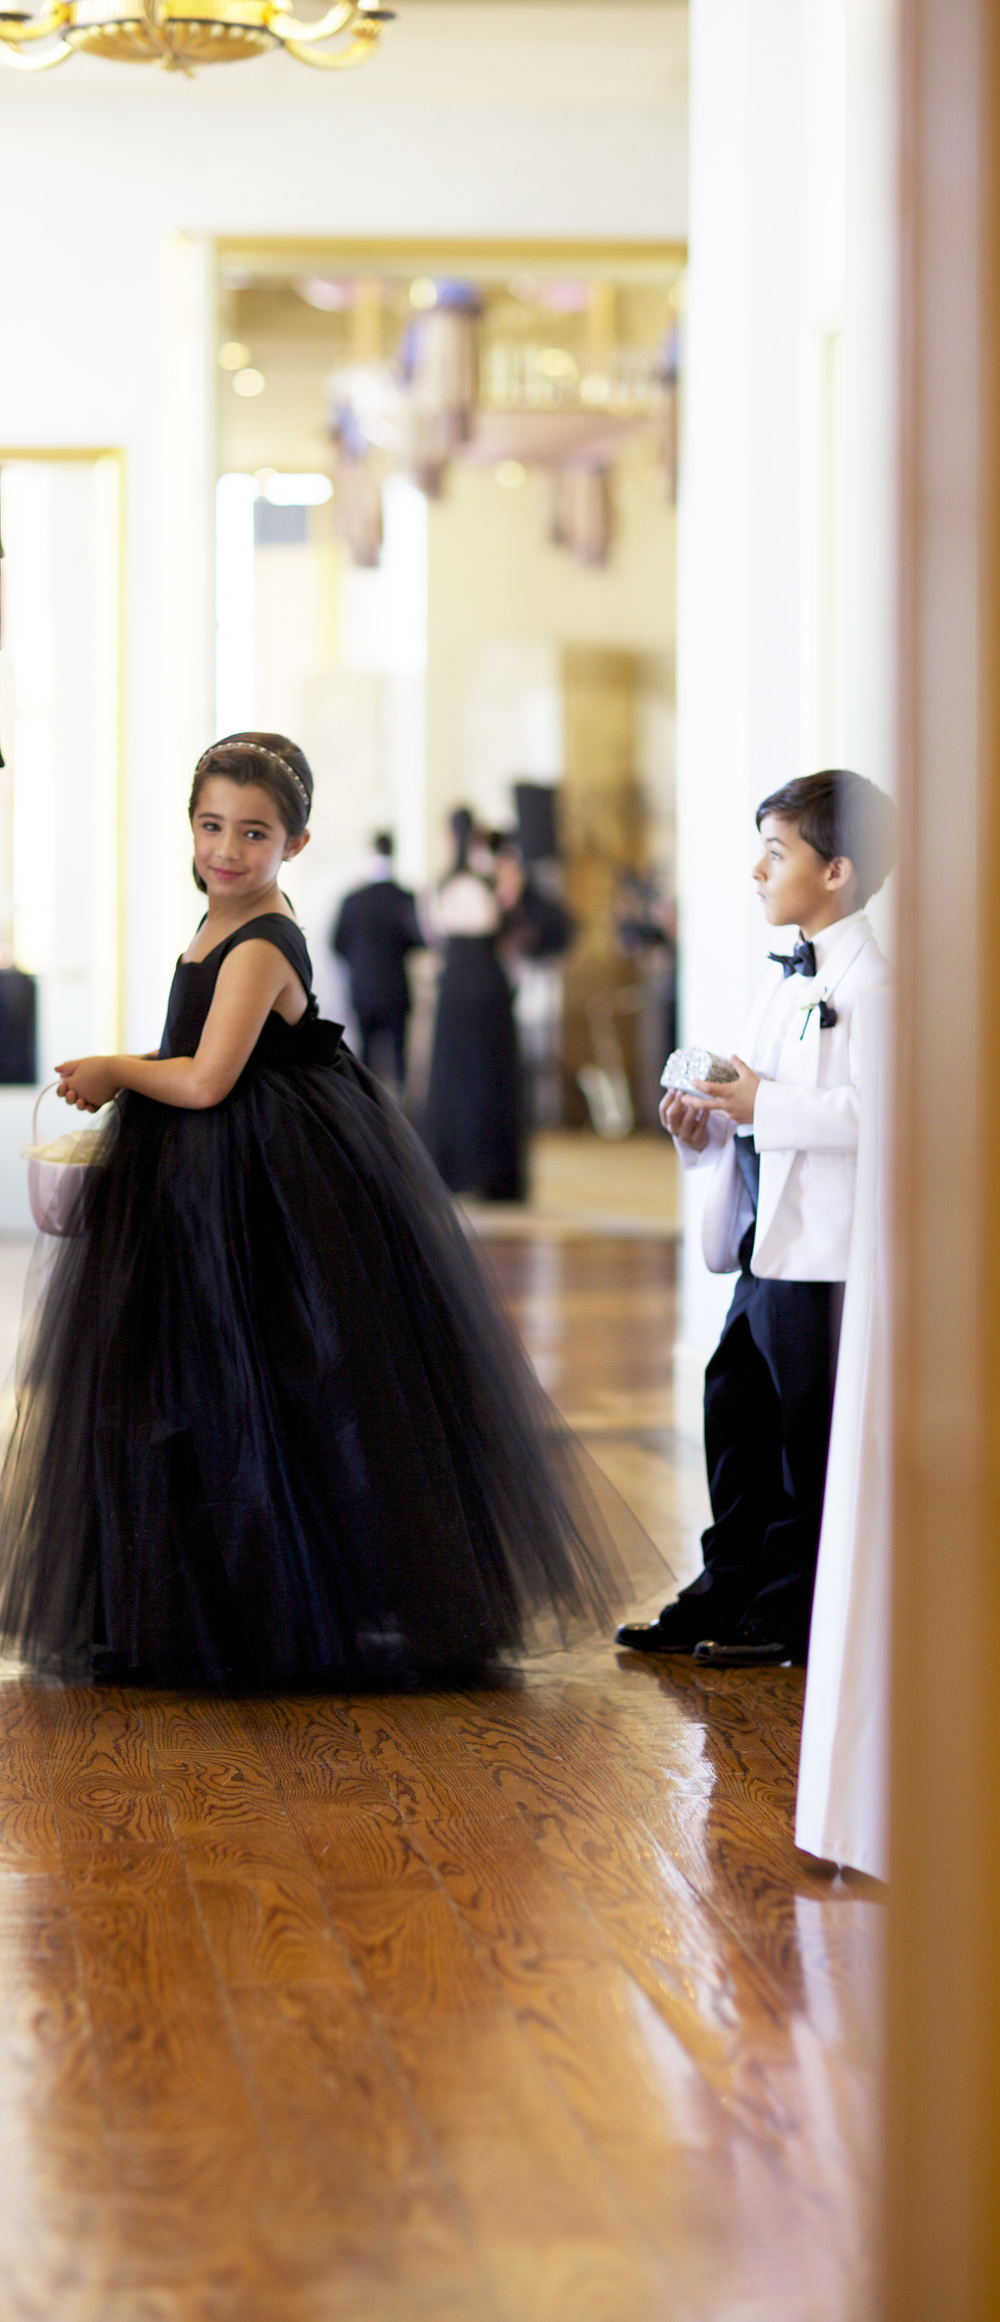 flower girl and ring bearer - wish social events